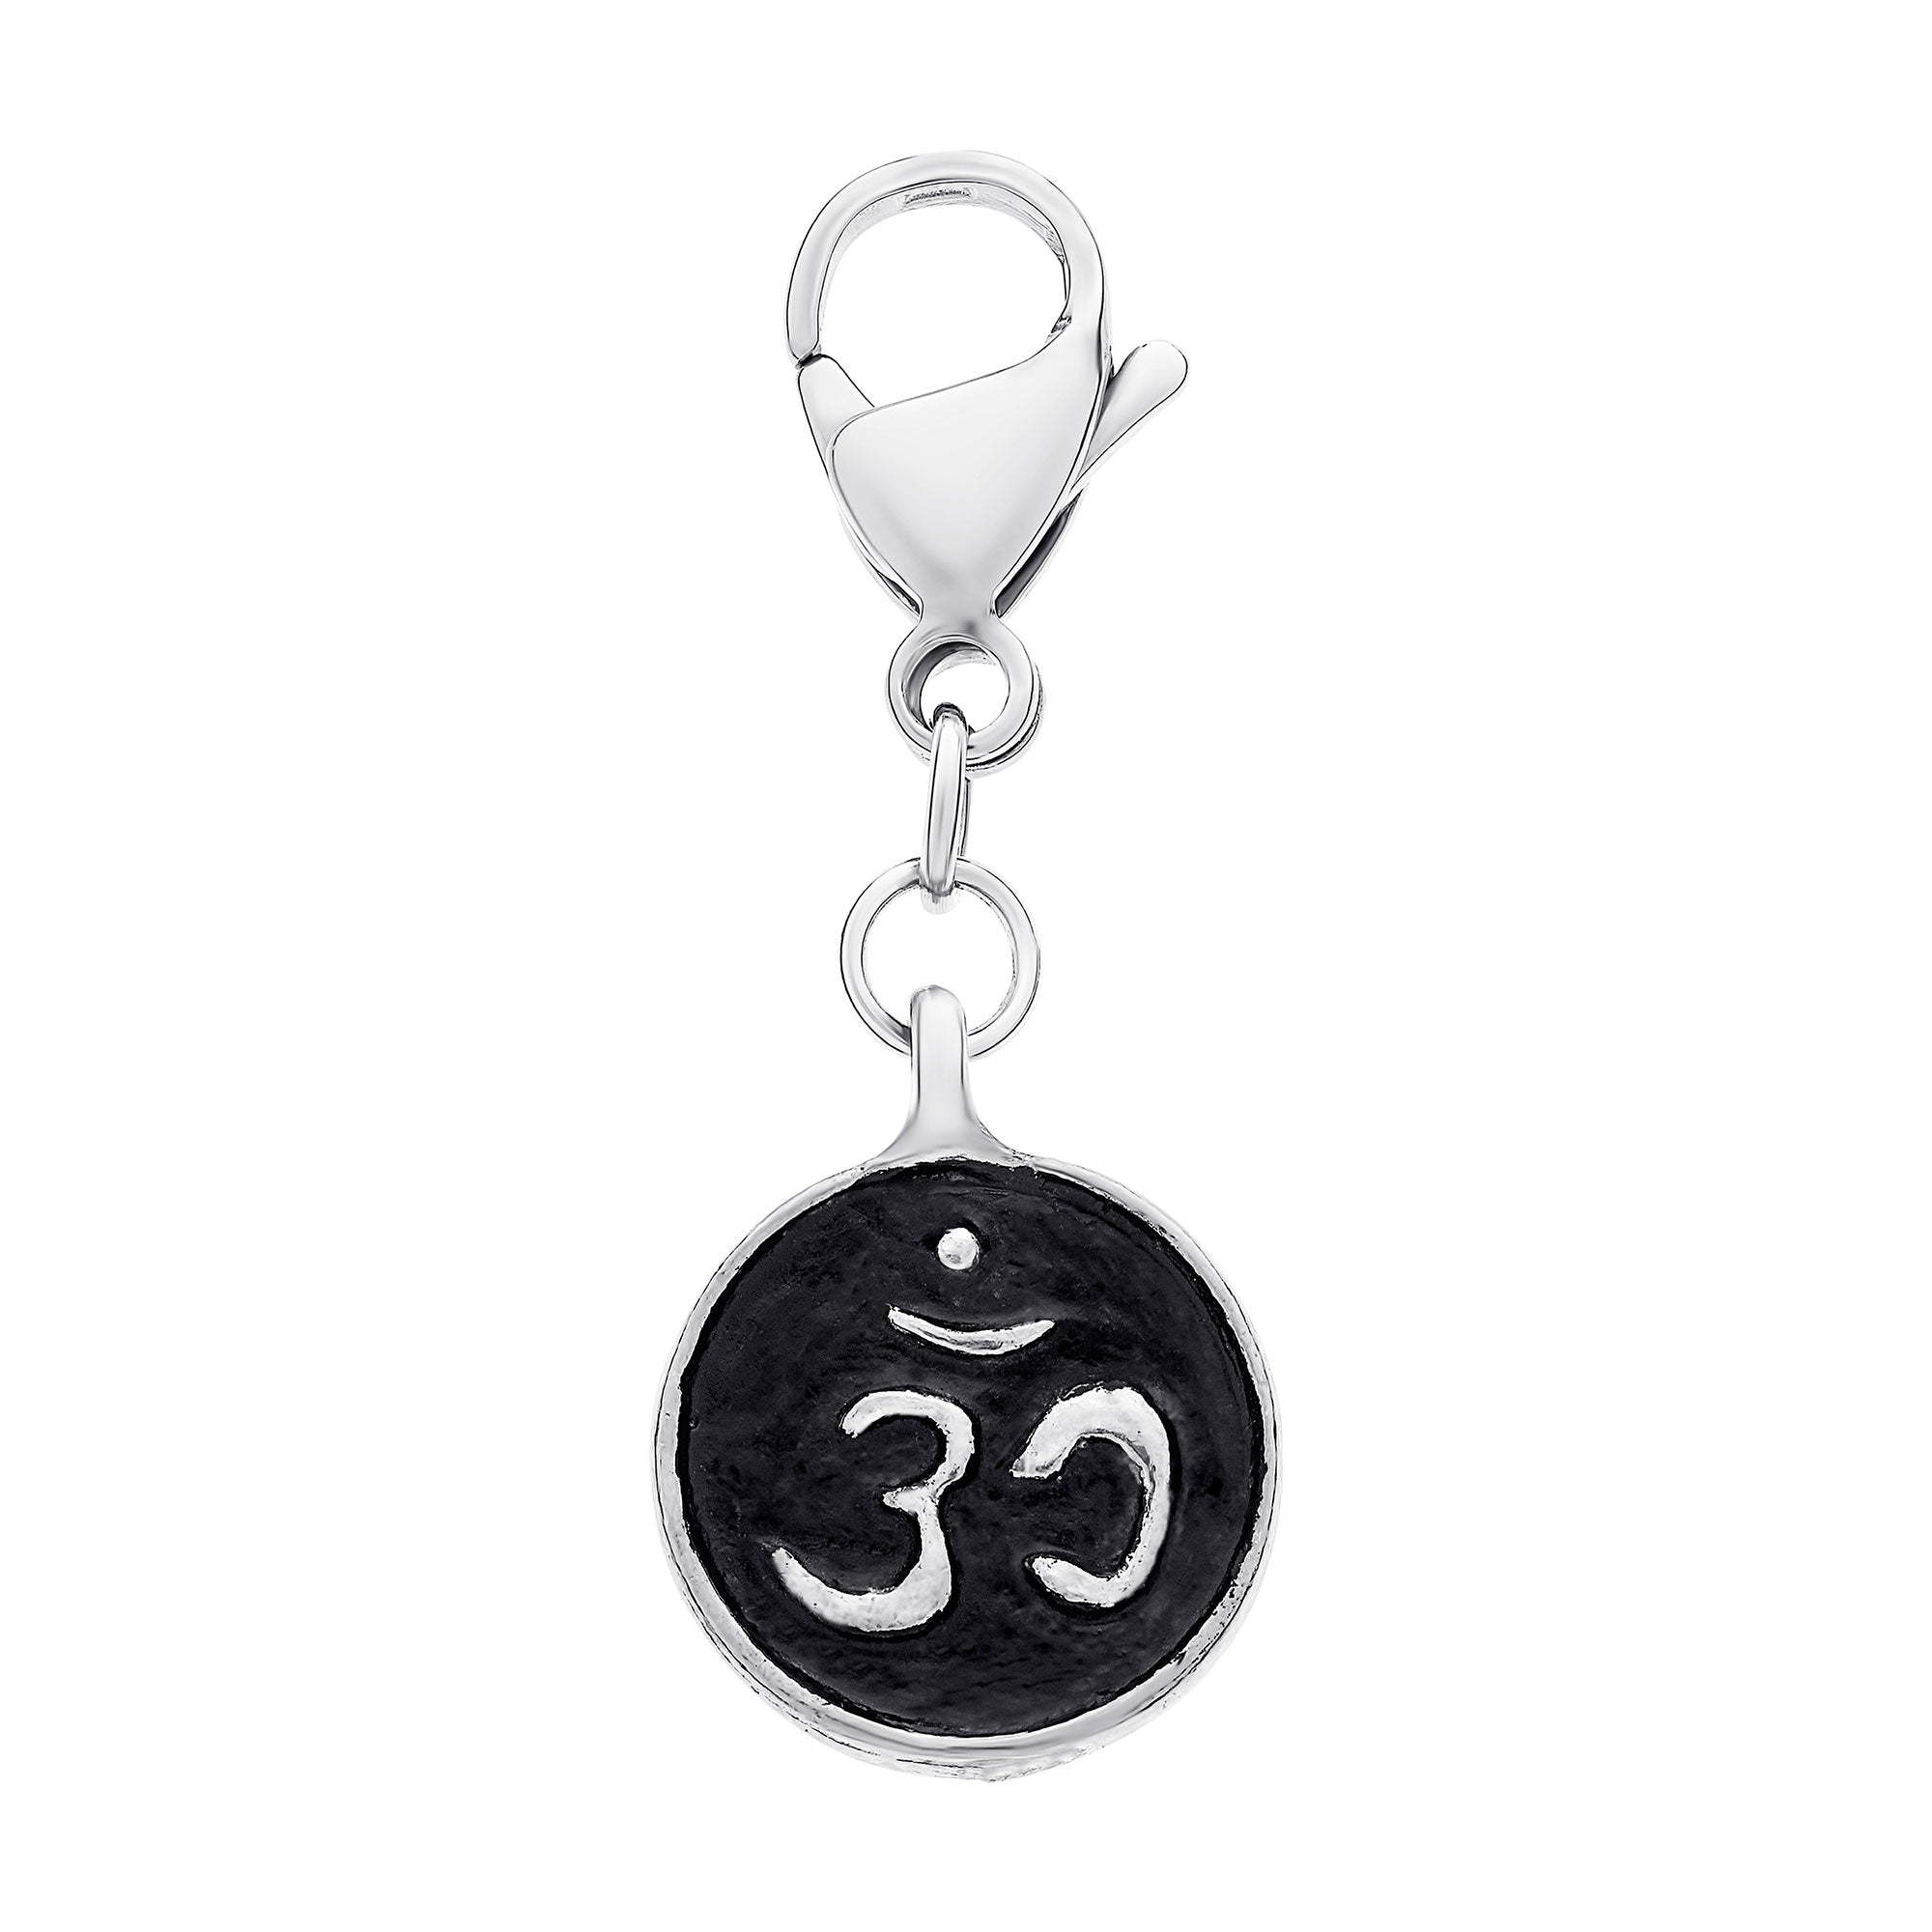 Detachable Om coin charm